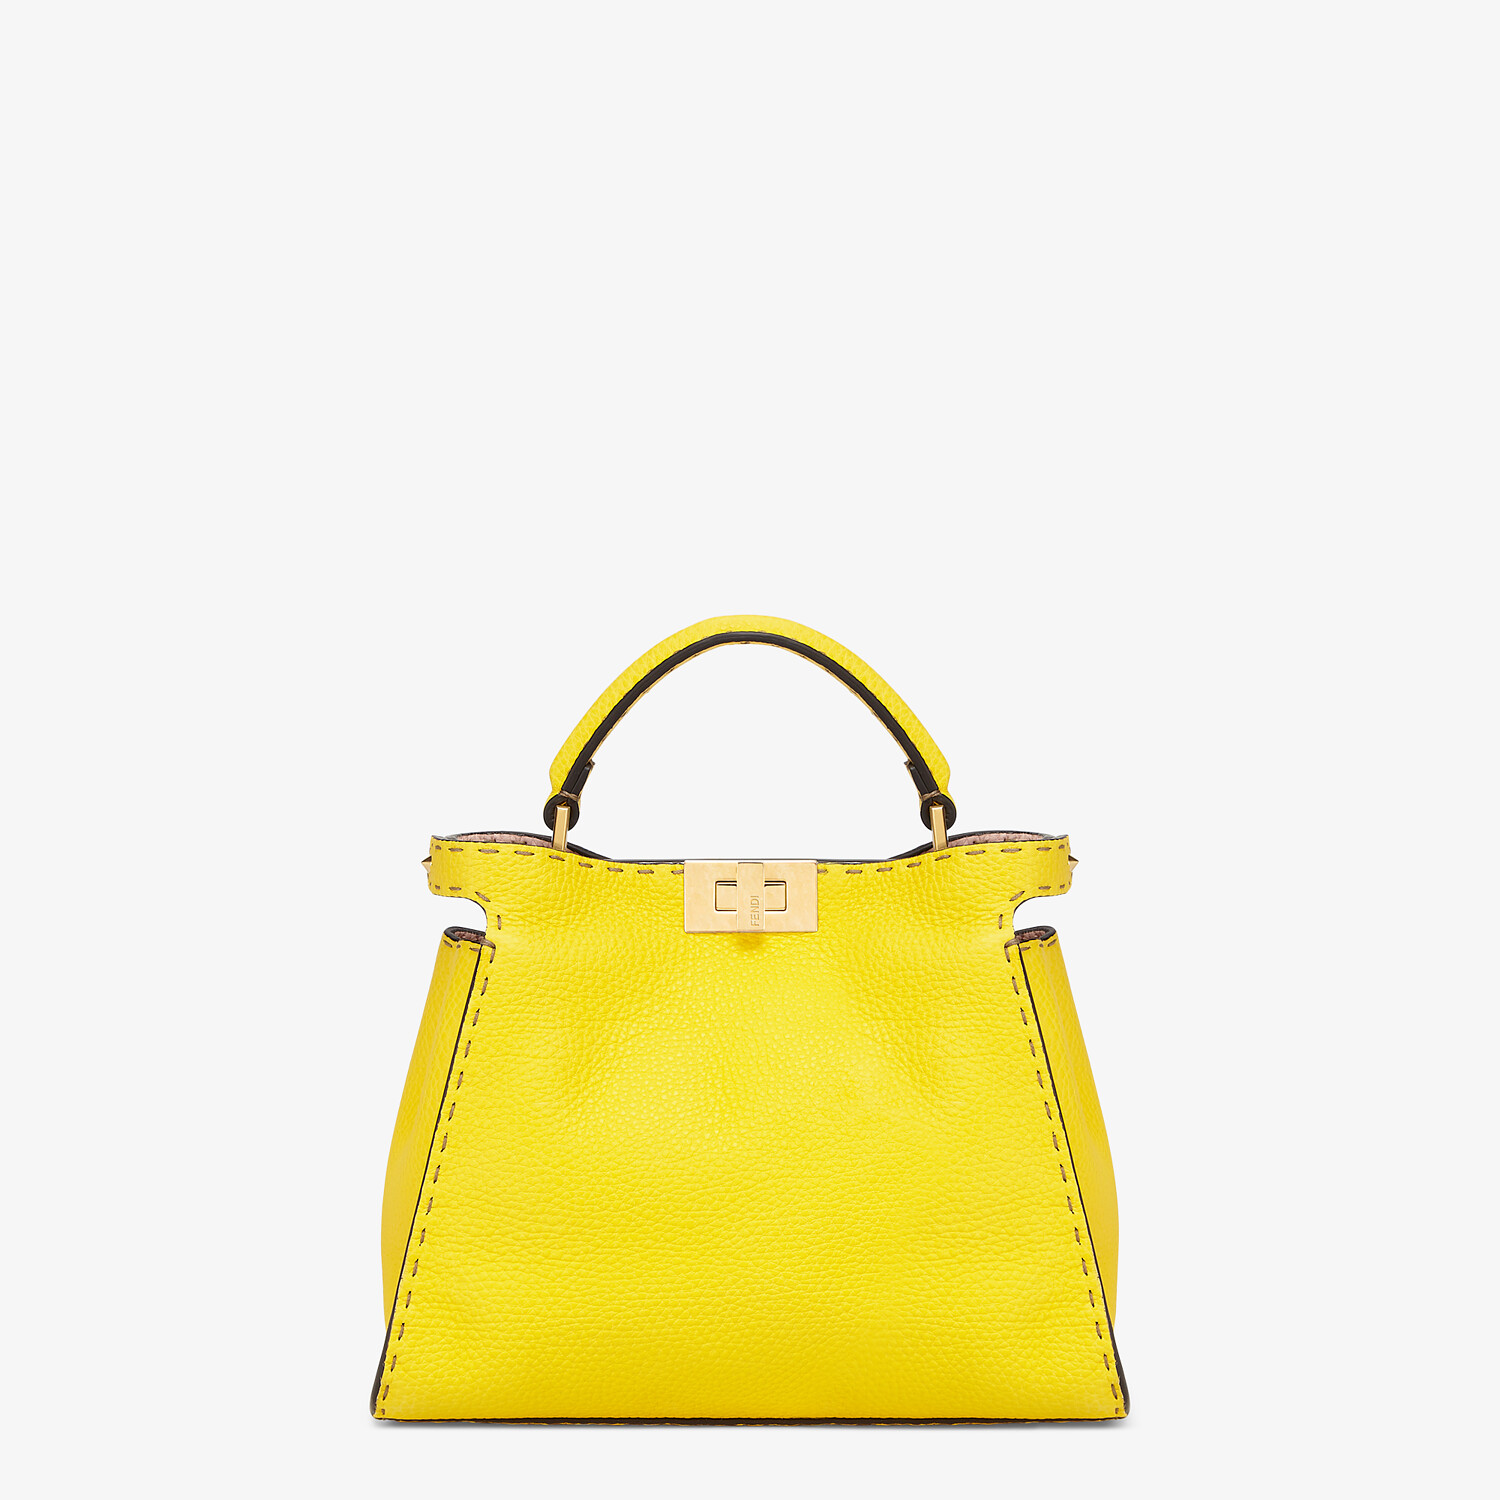 FENDI PEEKABOO ICONIC ESSENTIALLY - Yellow Cuoio Romano leather bag - view 1 detail